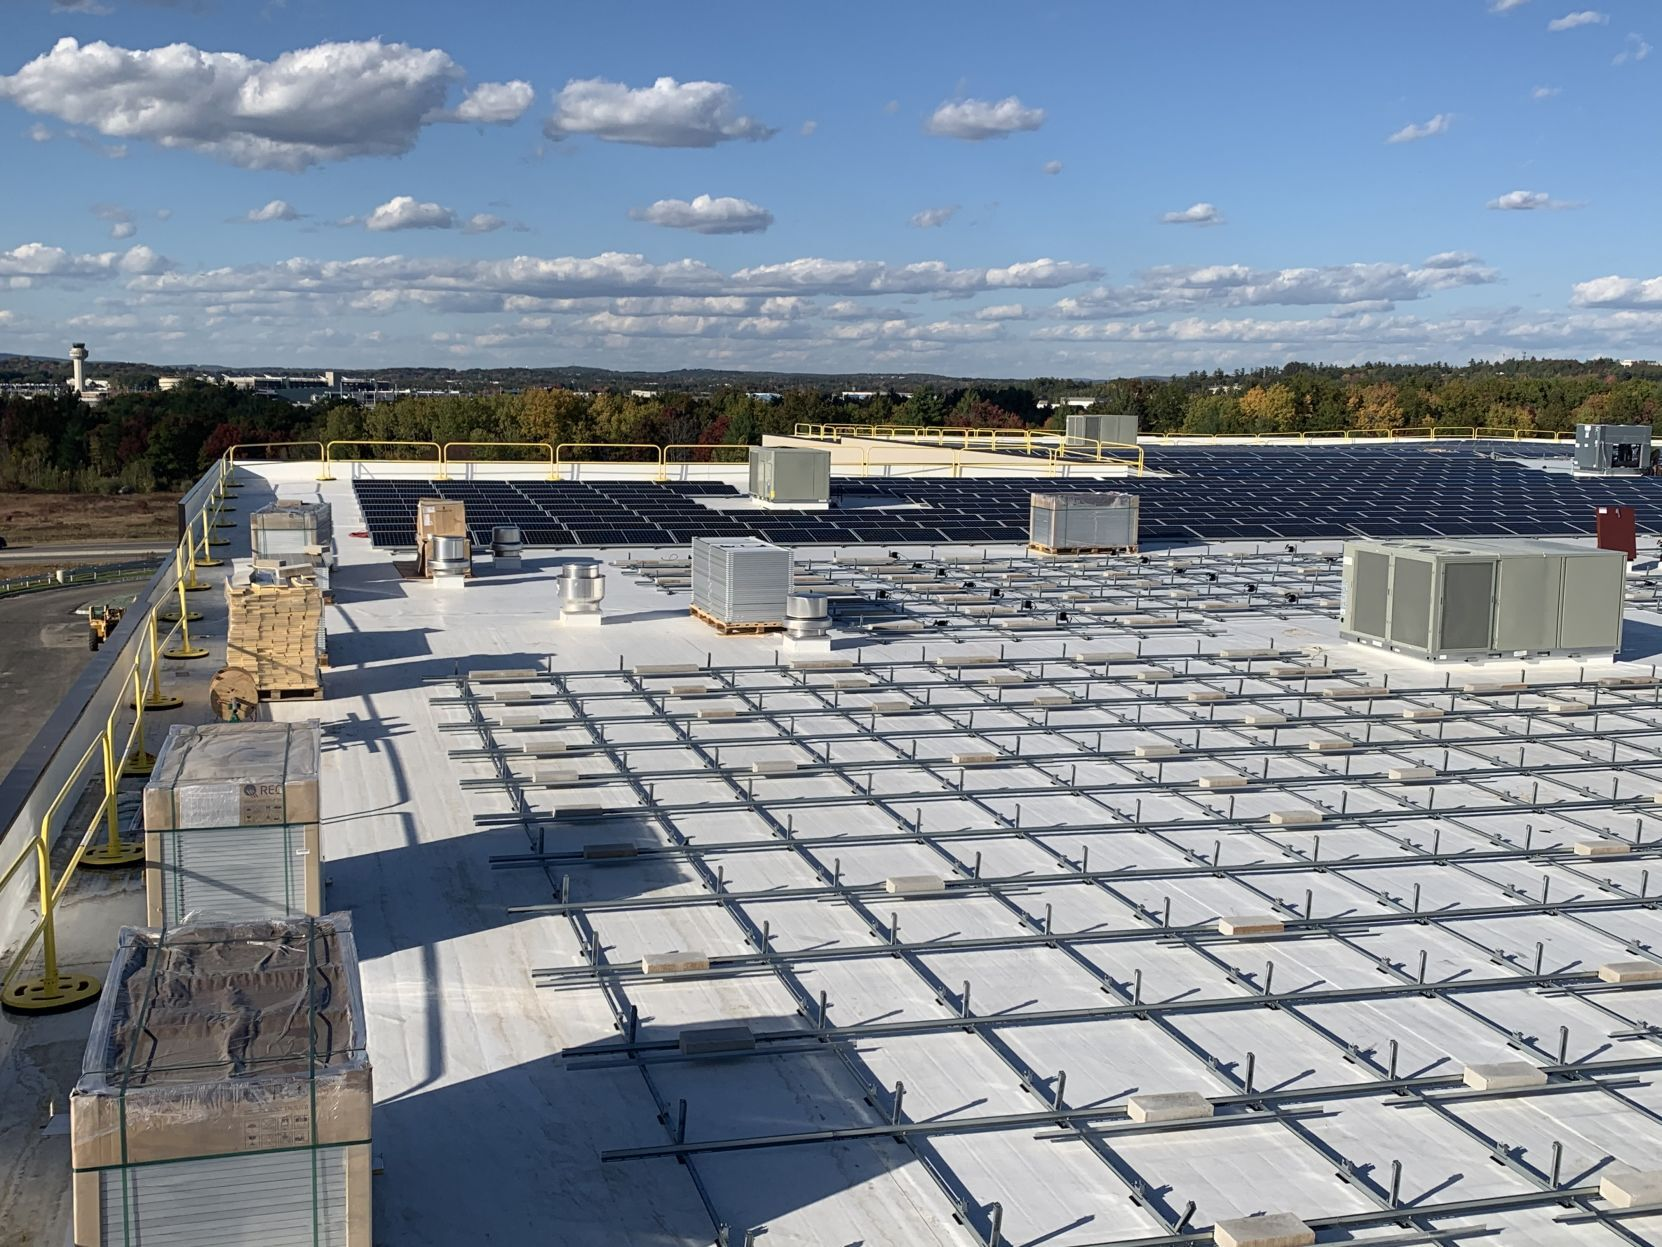 State's largest rooftop solar array under construction in Londonderry